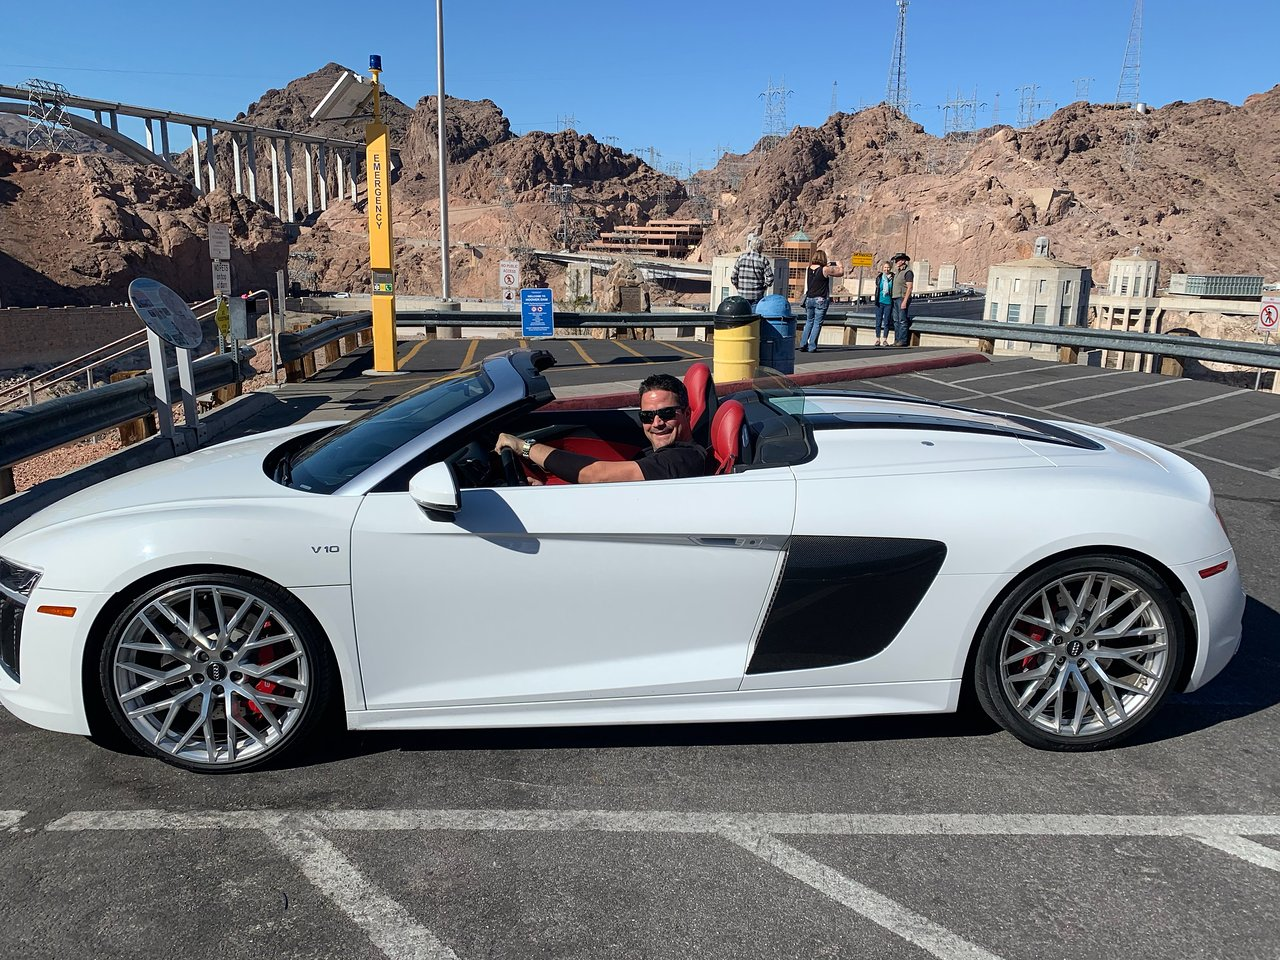 Lvc Exotic Car Rentals Las Vegas 2019 All You Need To